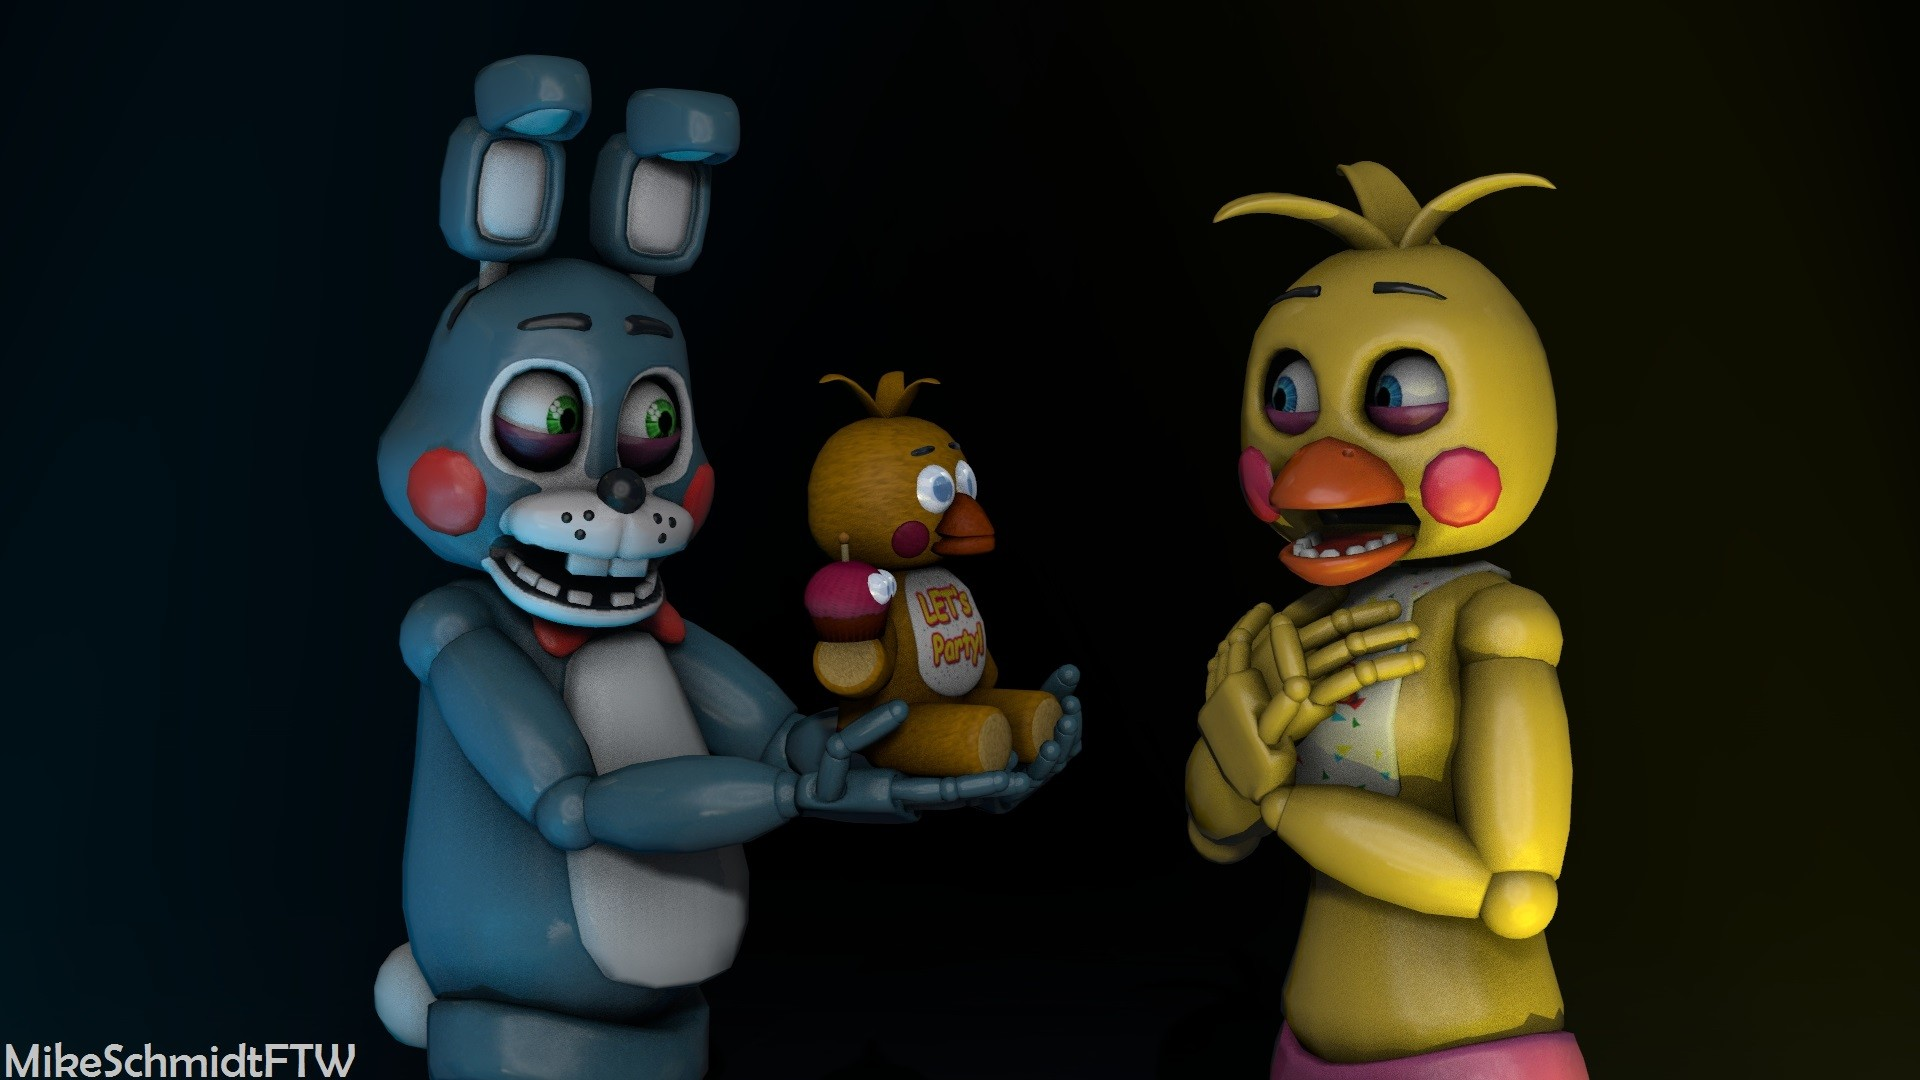 1920x1080 ... OfficerSchmidtFTW Toy Bonnie and Toy Chica by OfficerSchmidtFTW